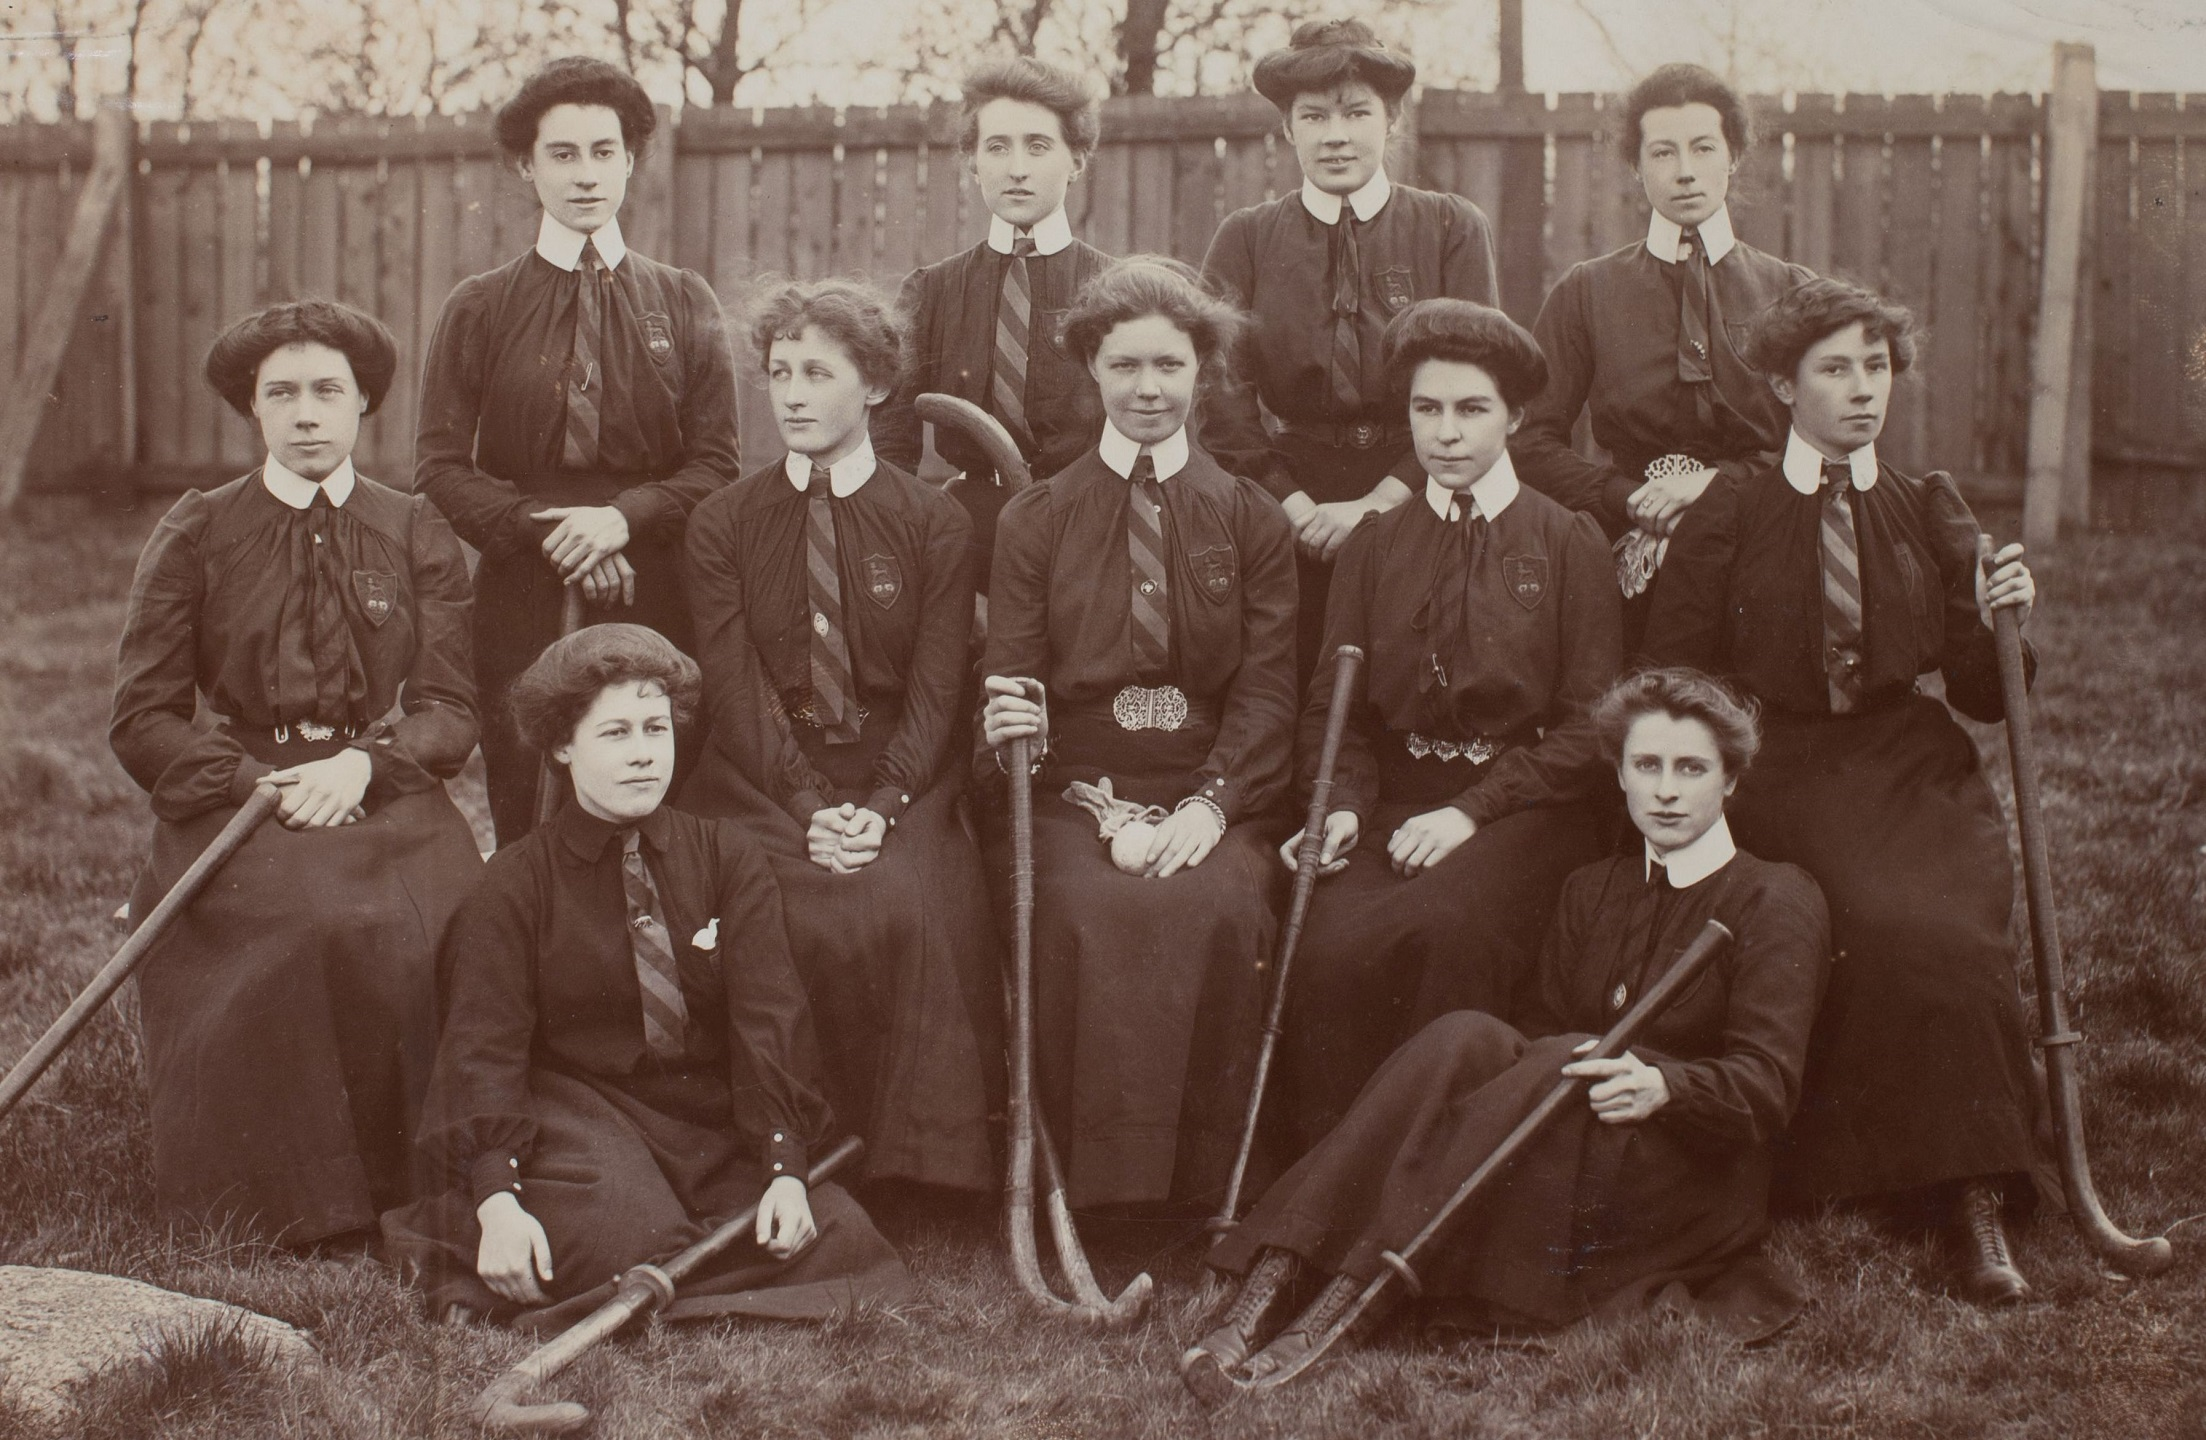 King's College London ladies' hockey team, c 1900 (Edith Thompson A/1)